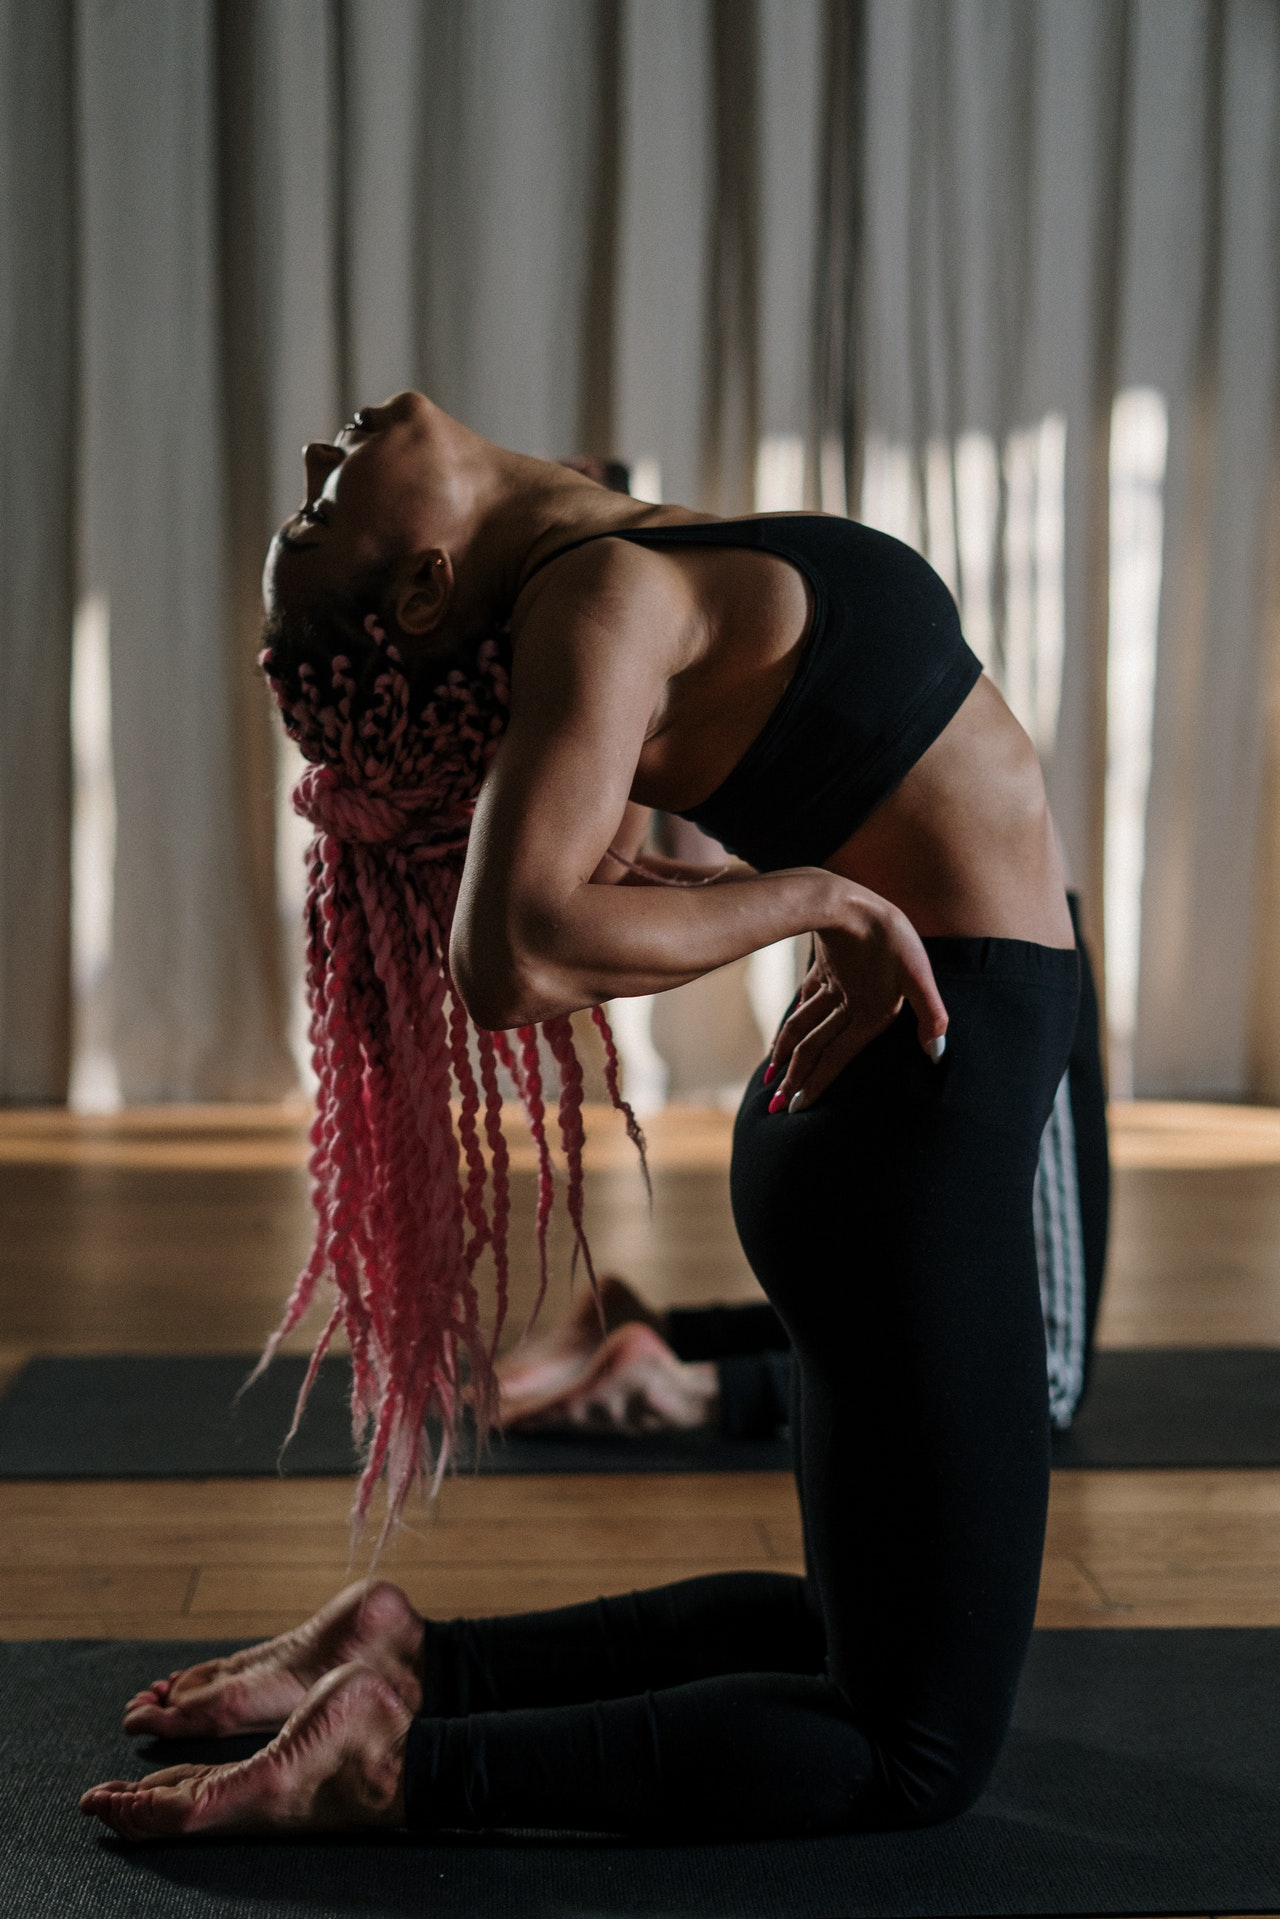 woman with pink braids doing a camel pose